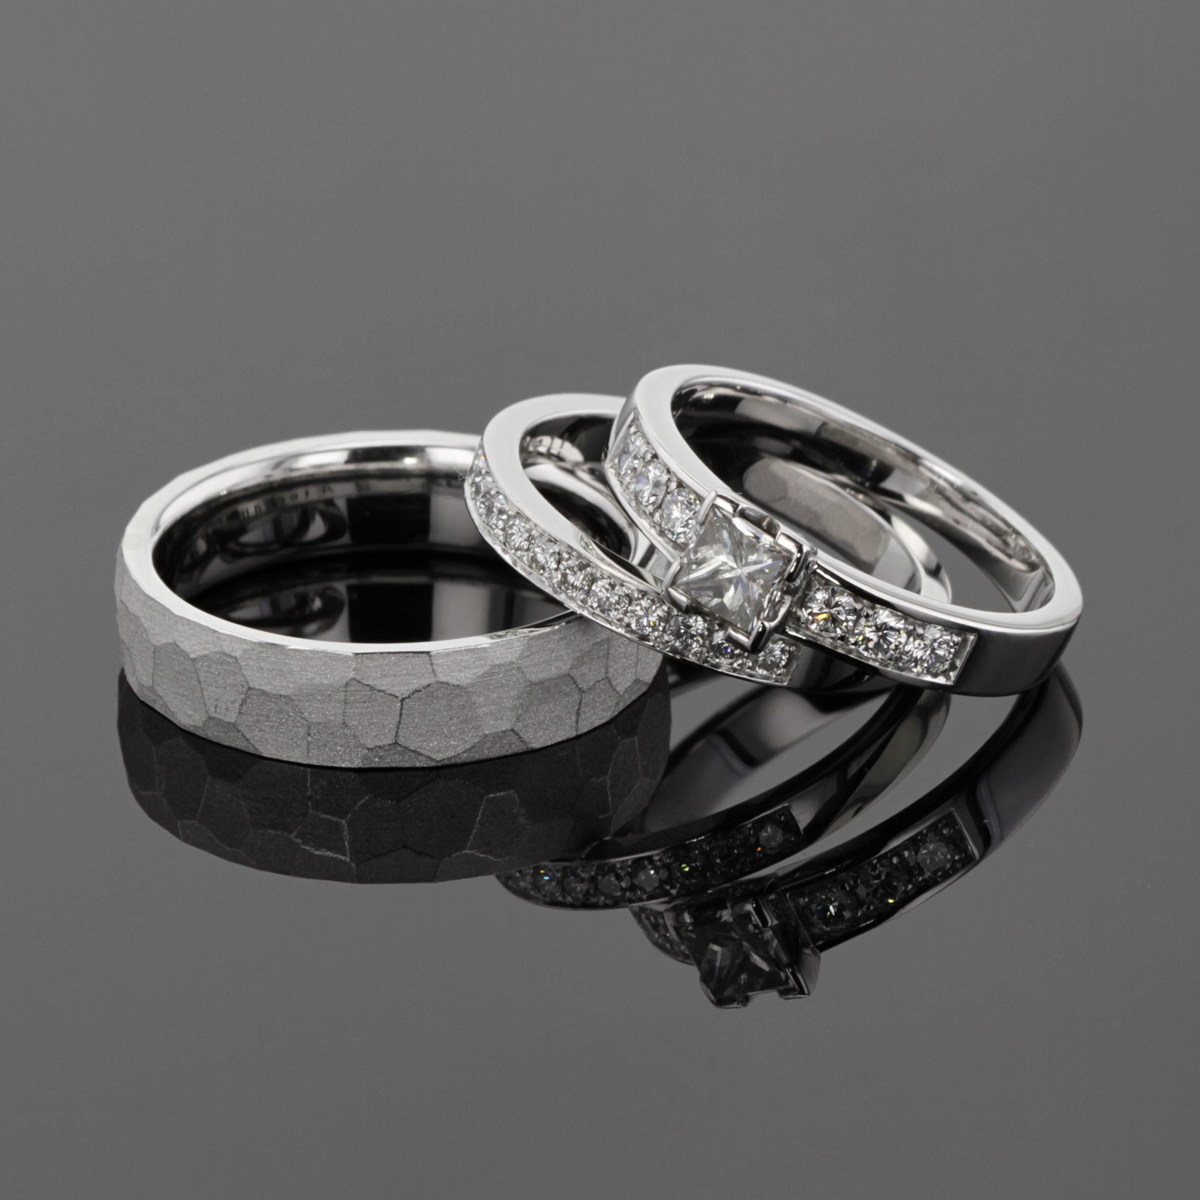 Wedding rings made in Mauritius